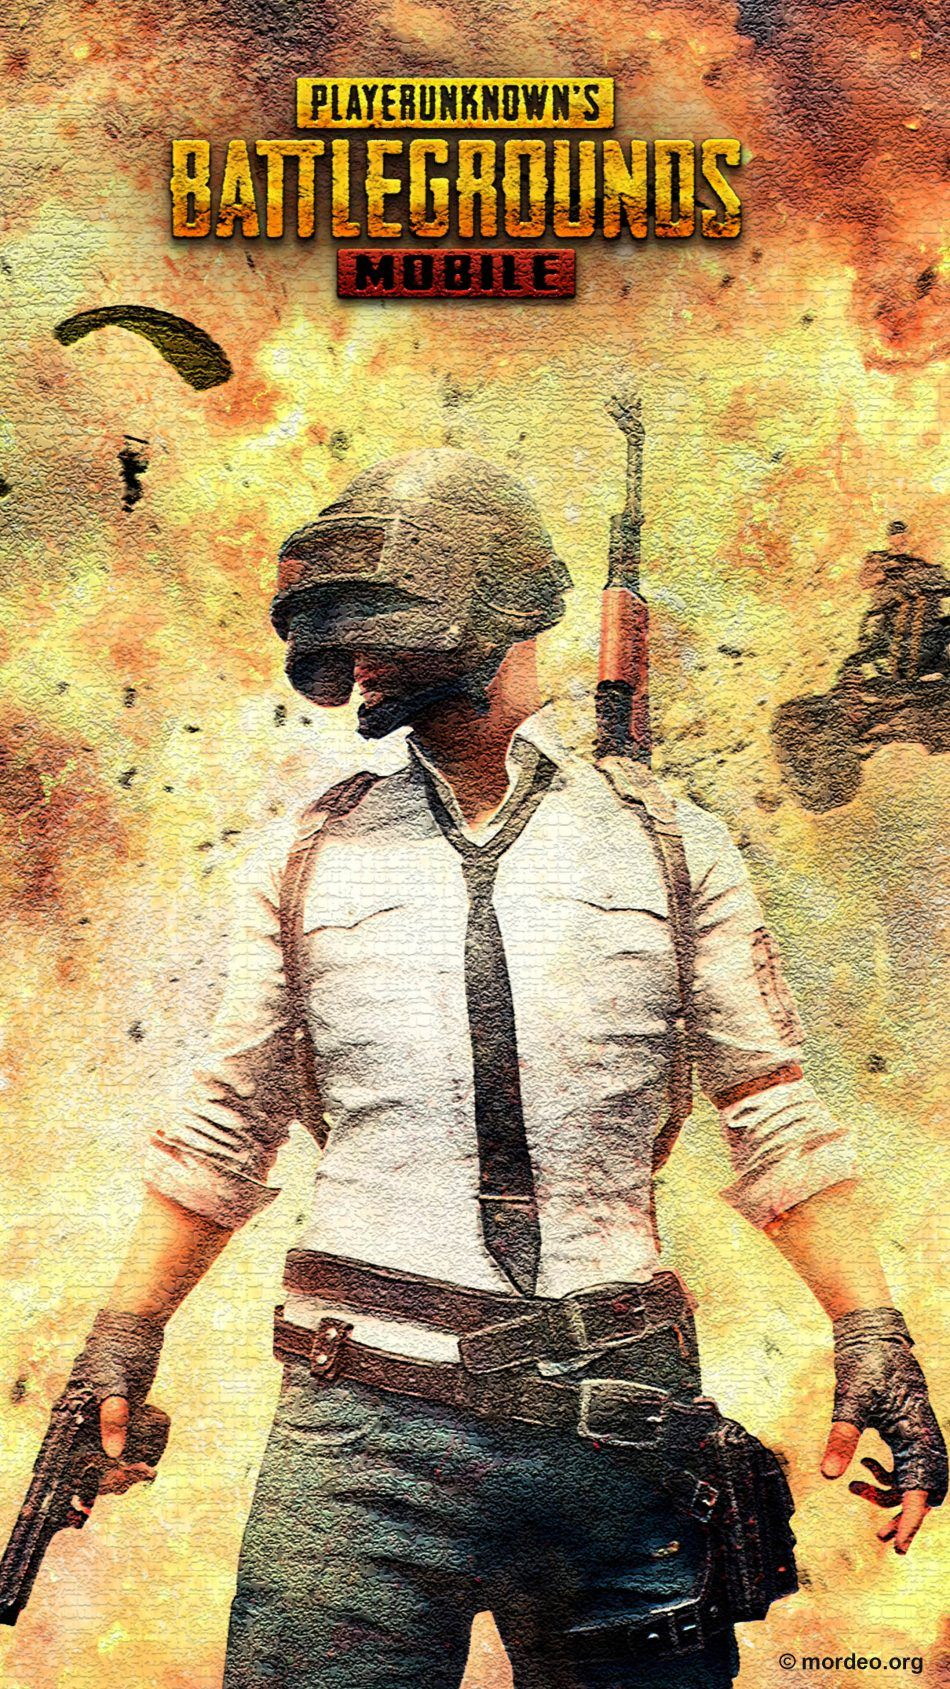 Pubg Mobile Playerunknown S Battlegrounds 4k Ultra Hd Mobile Wallpaper Mobile Wallpaper Mobile Wallpaper Android Mobile Legend Wallpaper